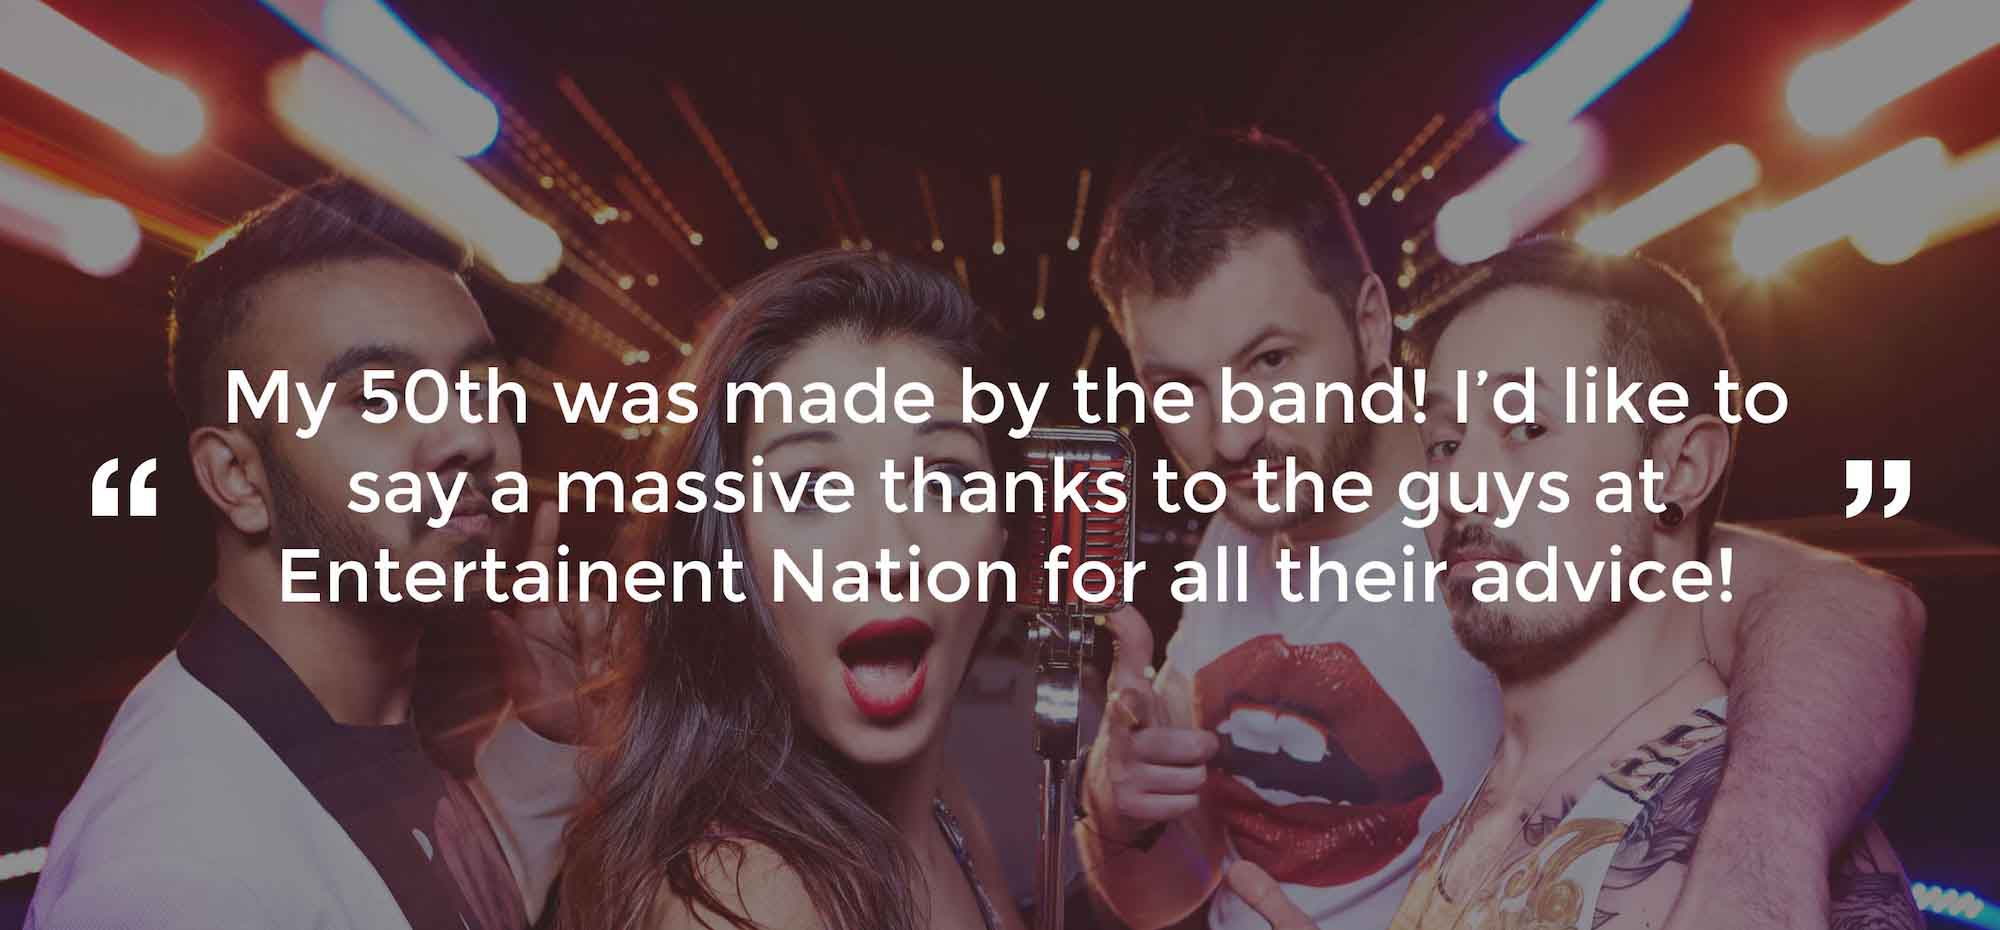 Client Review of a Party Band Monmouthshire